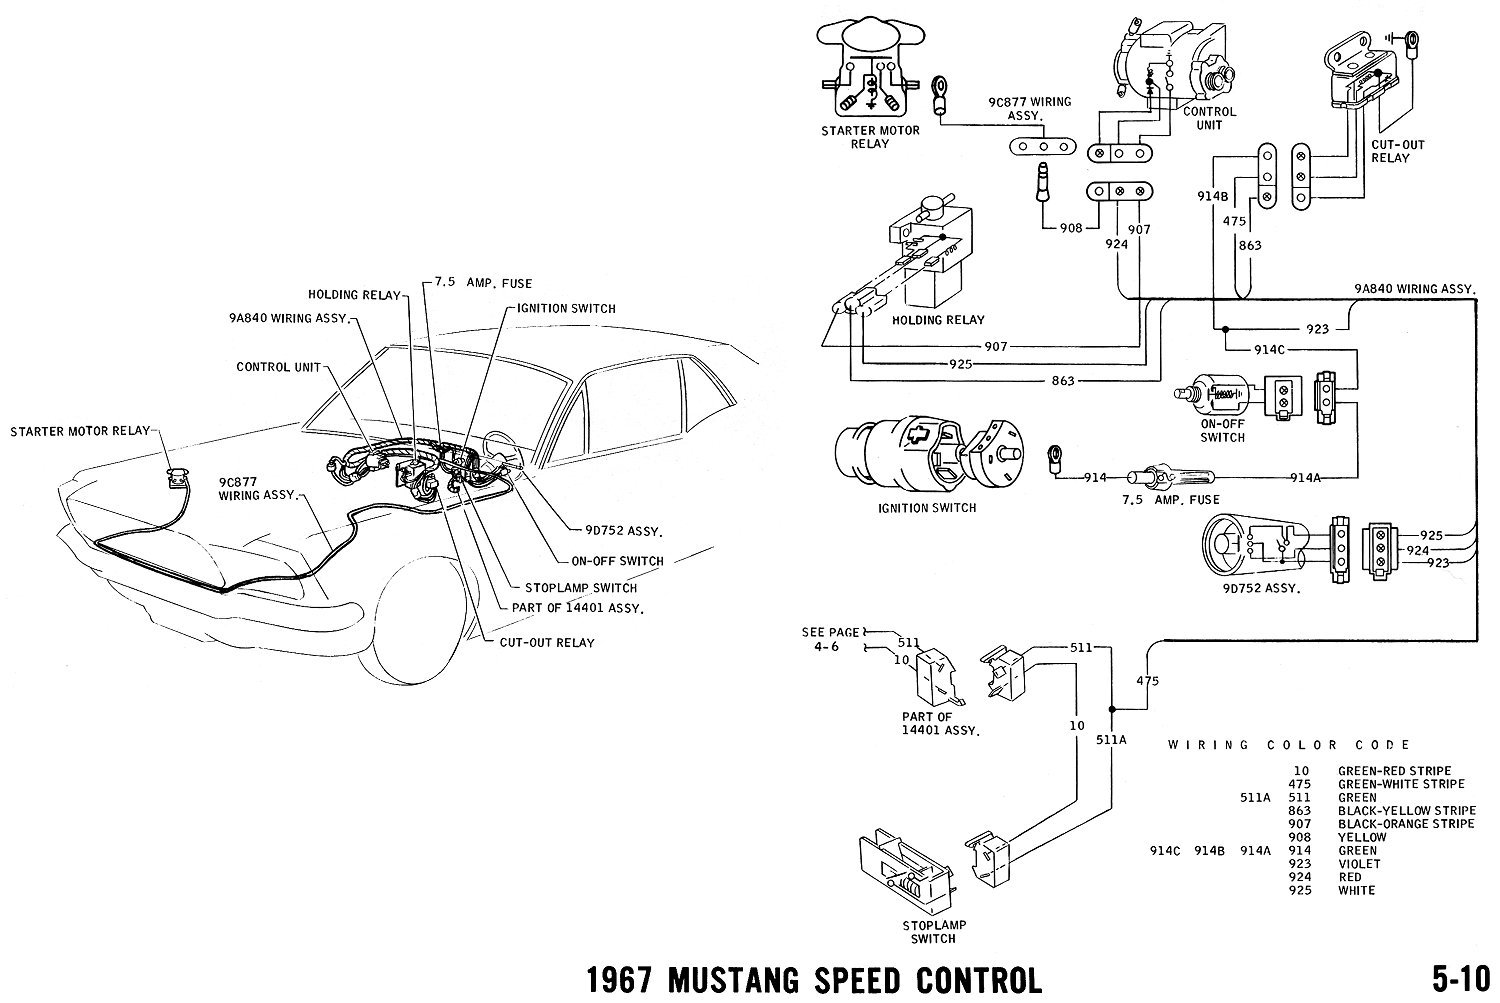 mustang ignition switch wiring diagram mustang discover your 1967 mustang wiring and vacuum diagrams